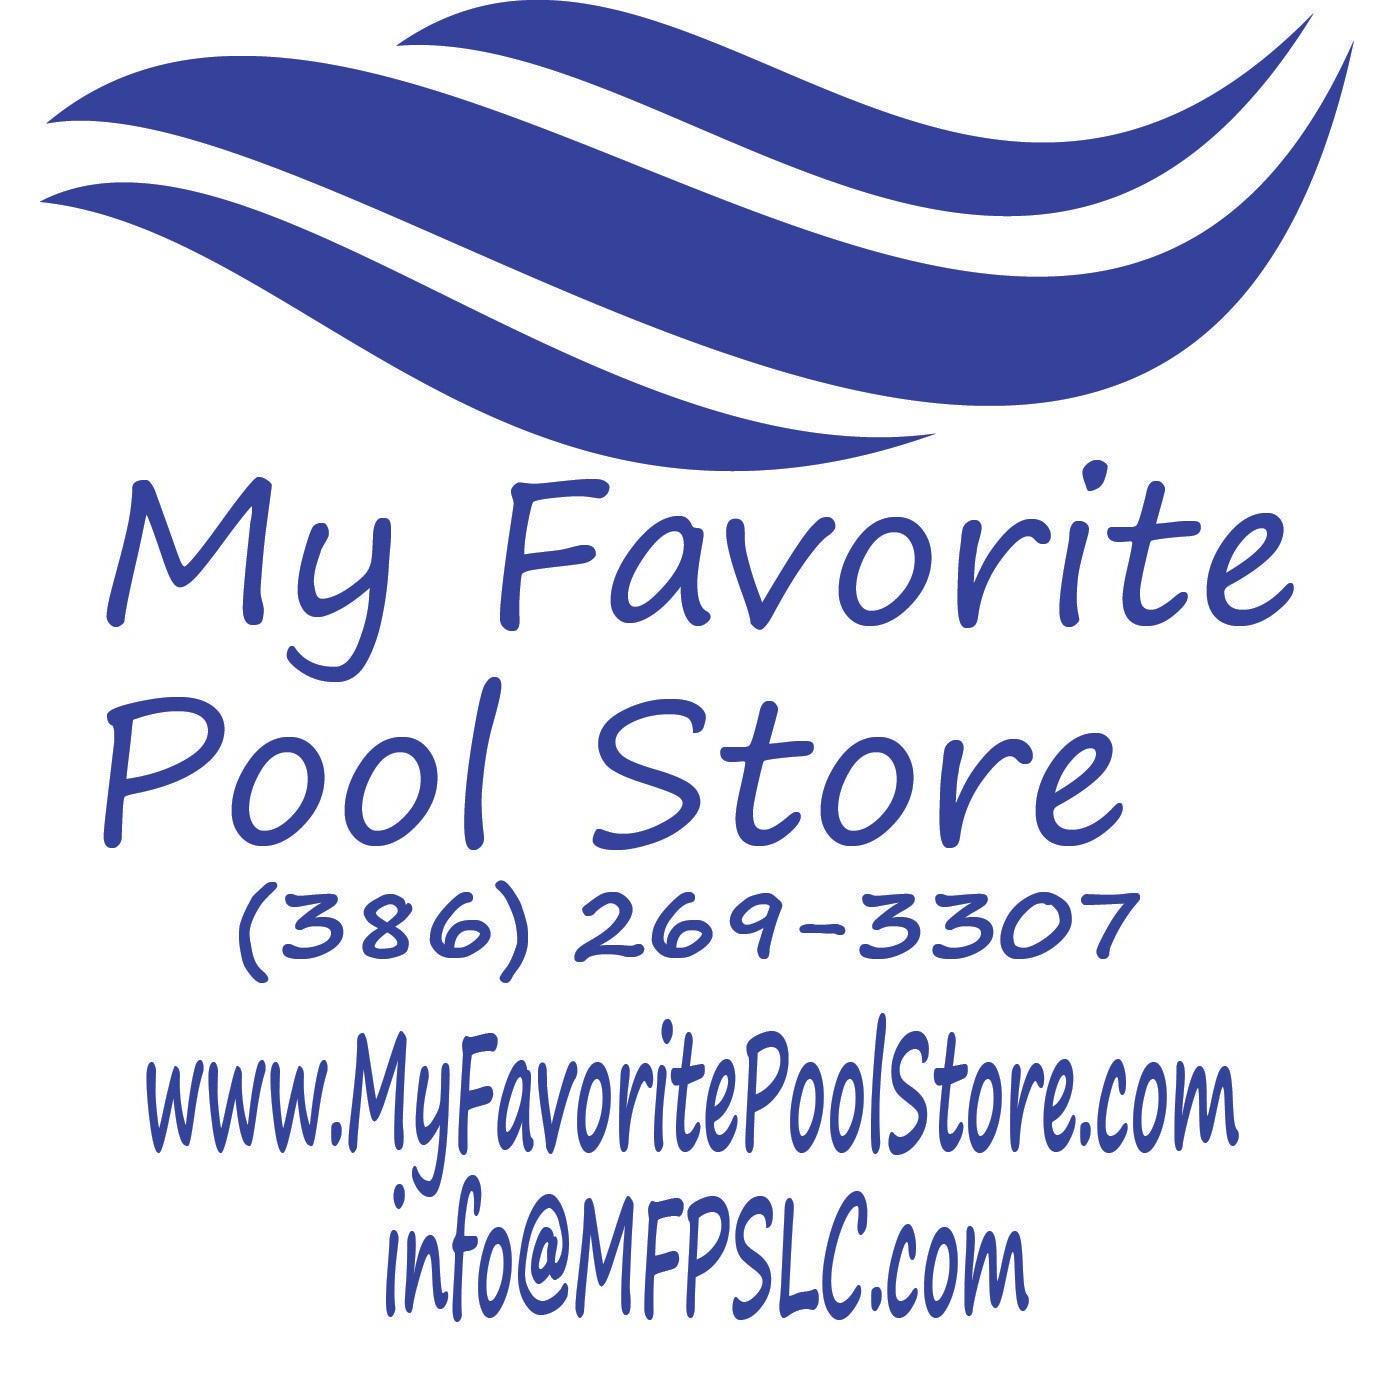 My Favorite Pool Store